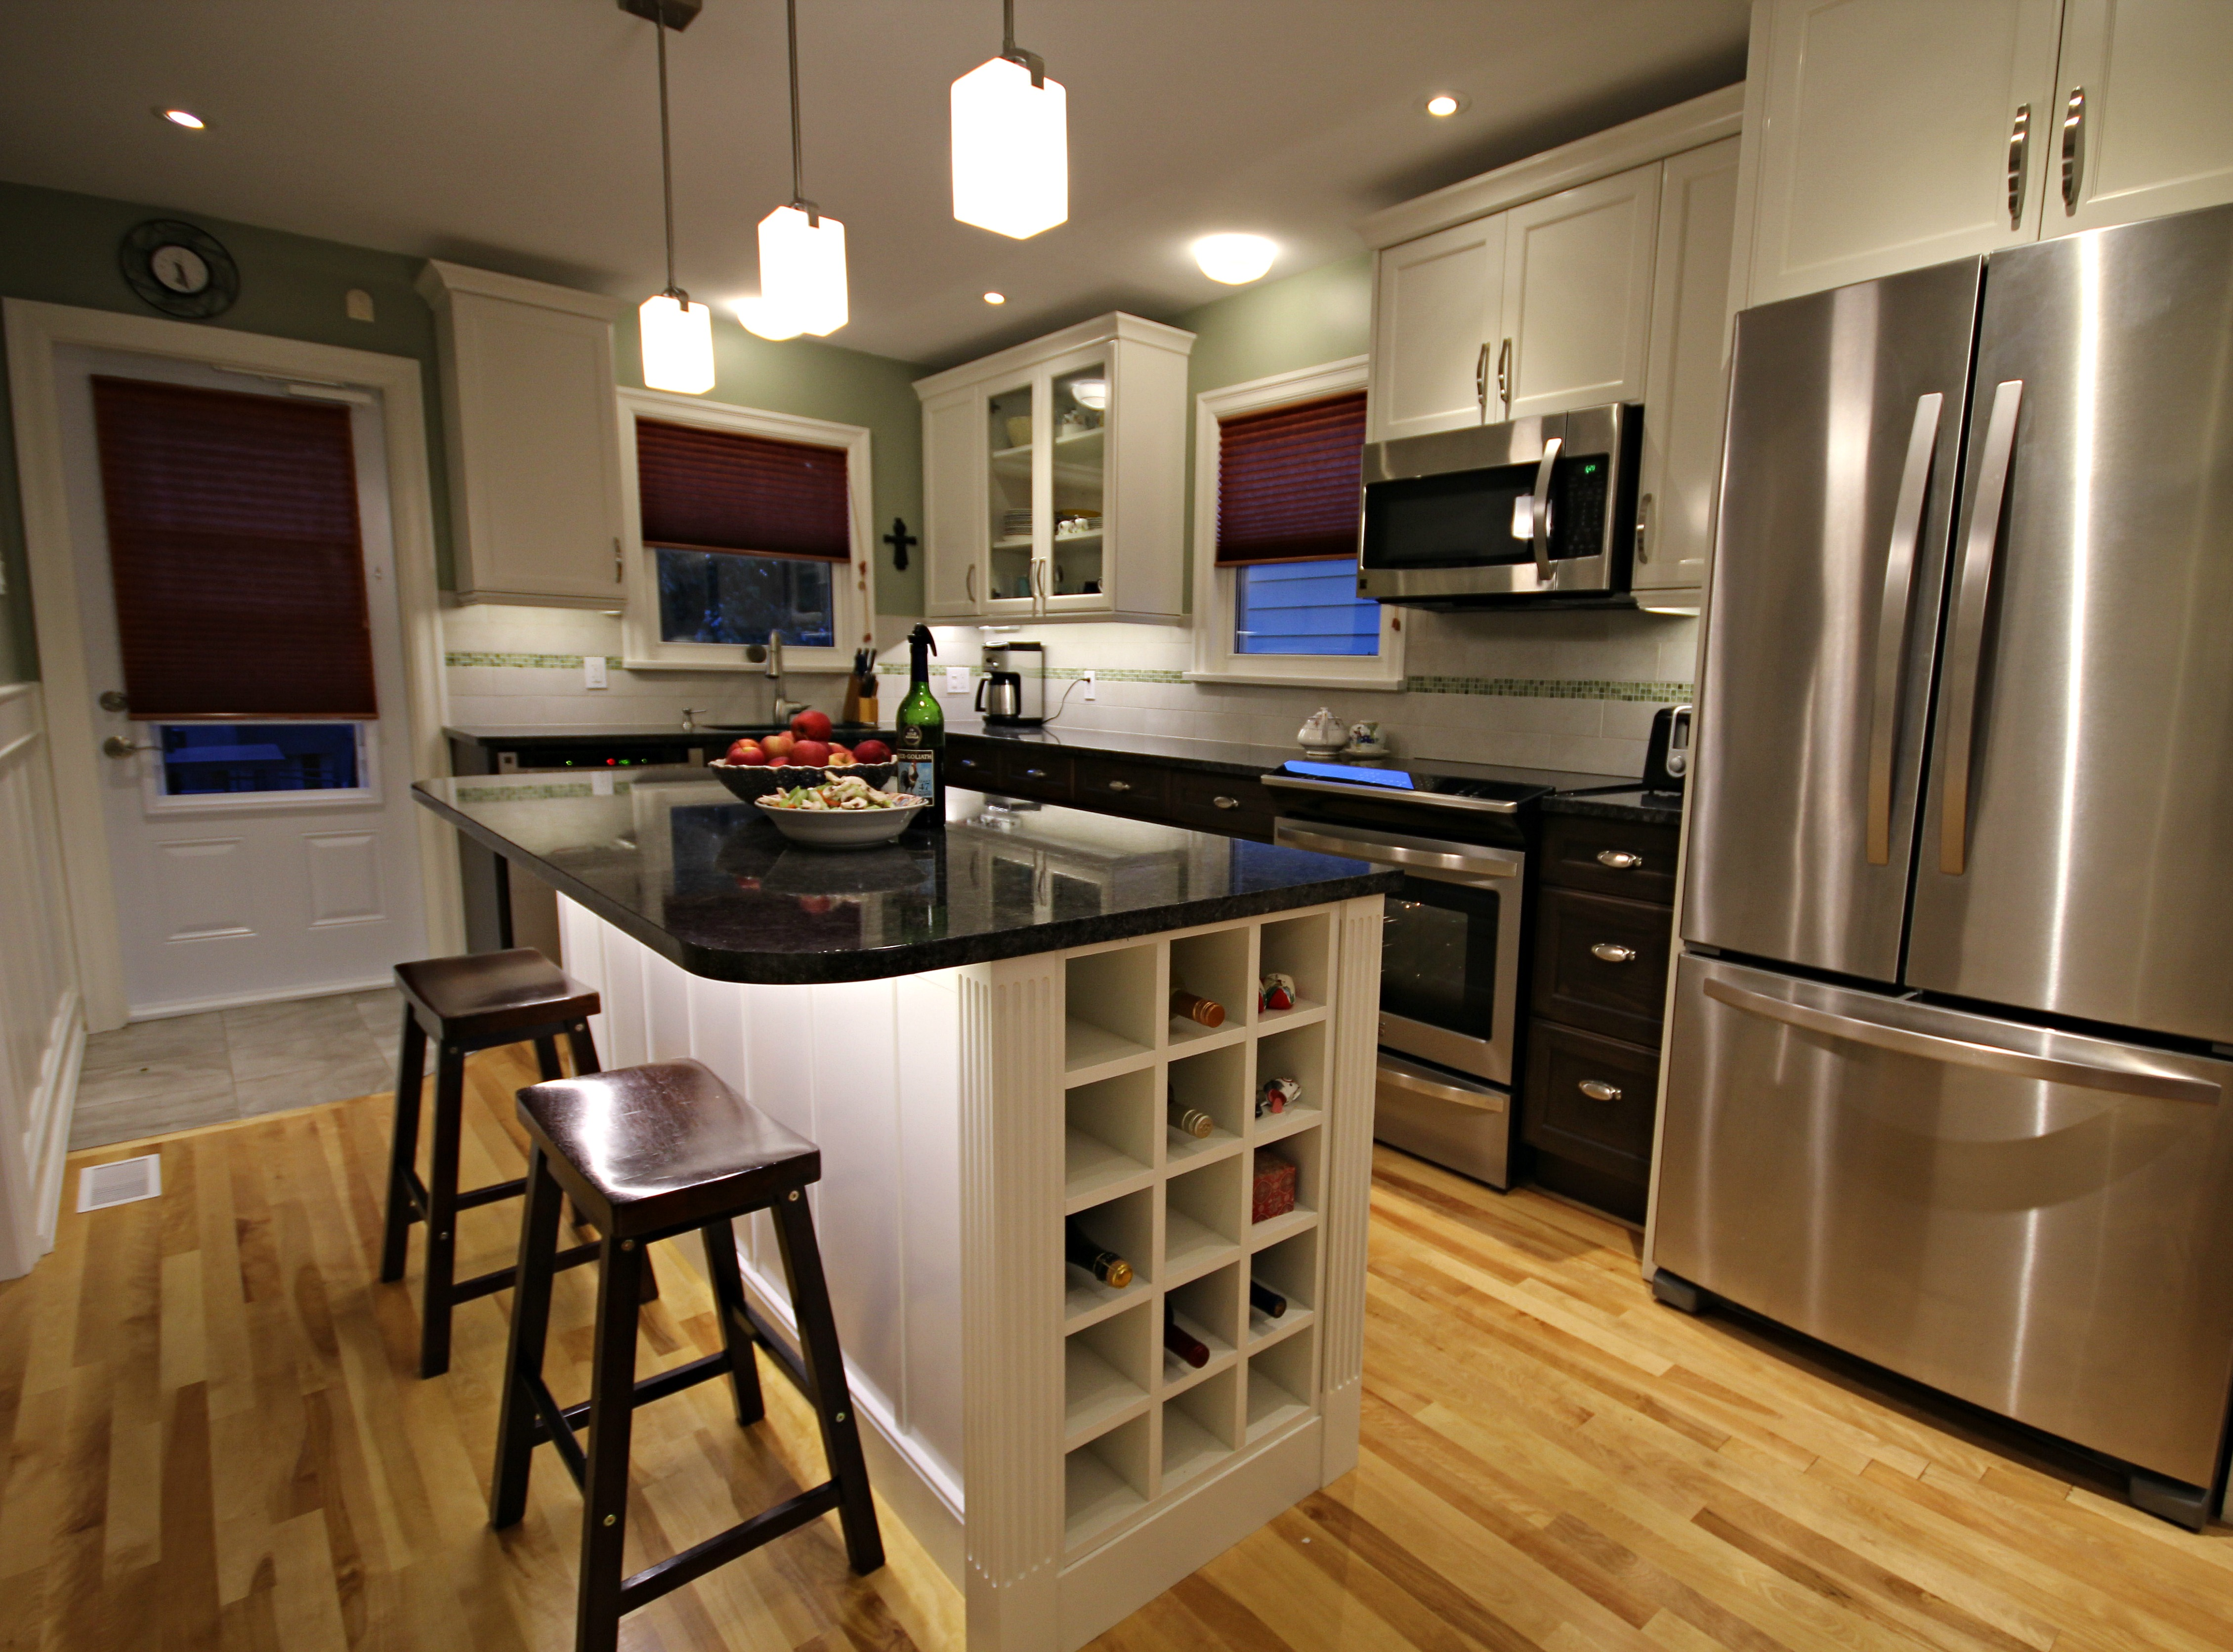 Captivating West End Halifax Kitchen Remodeling Opens A Wall To The Dining Room